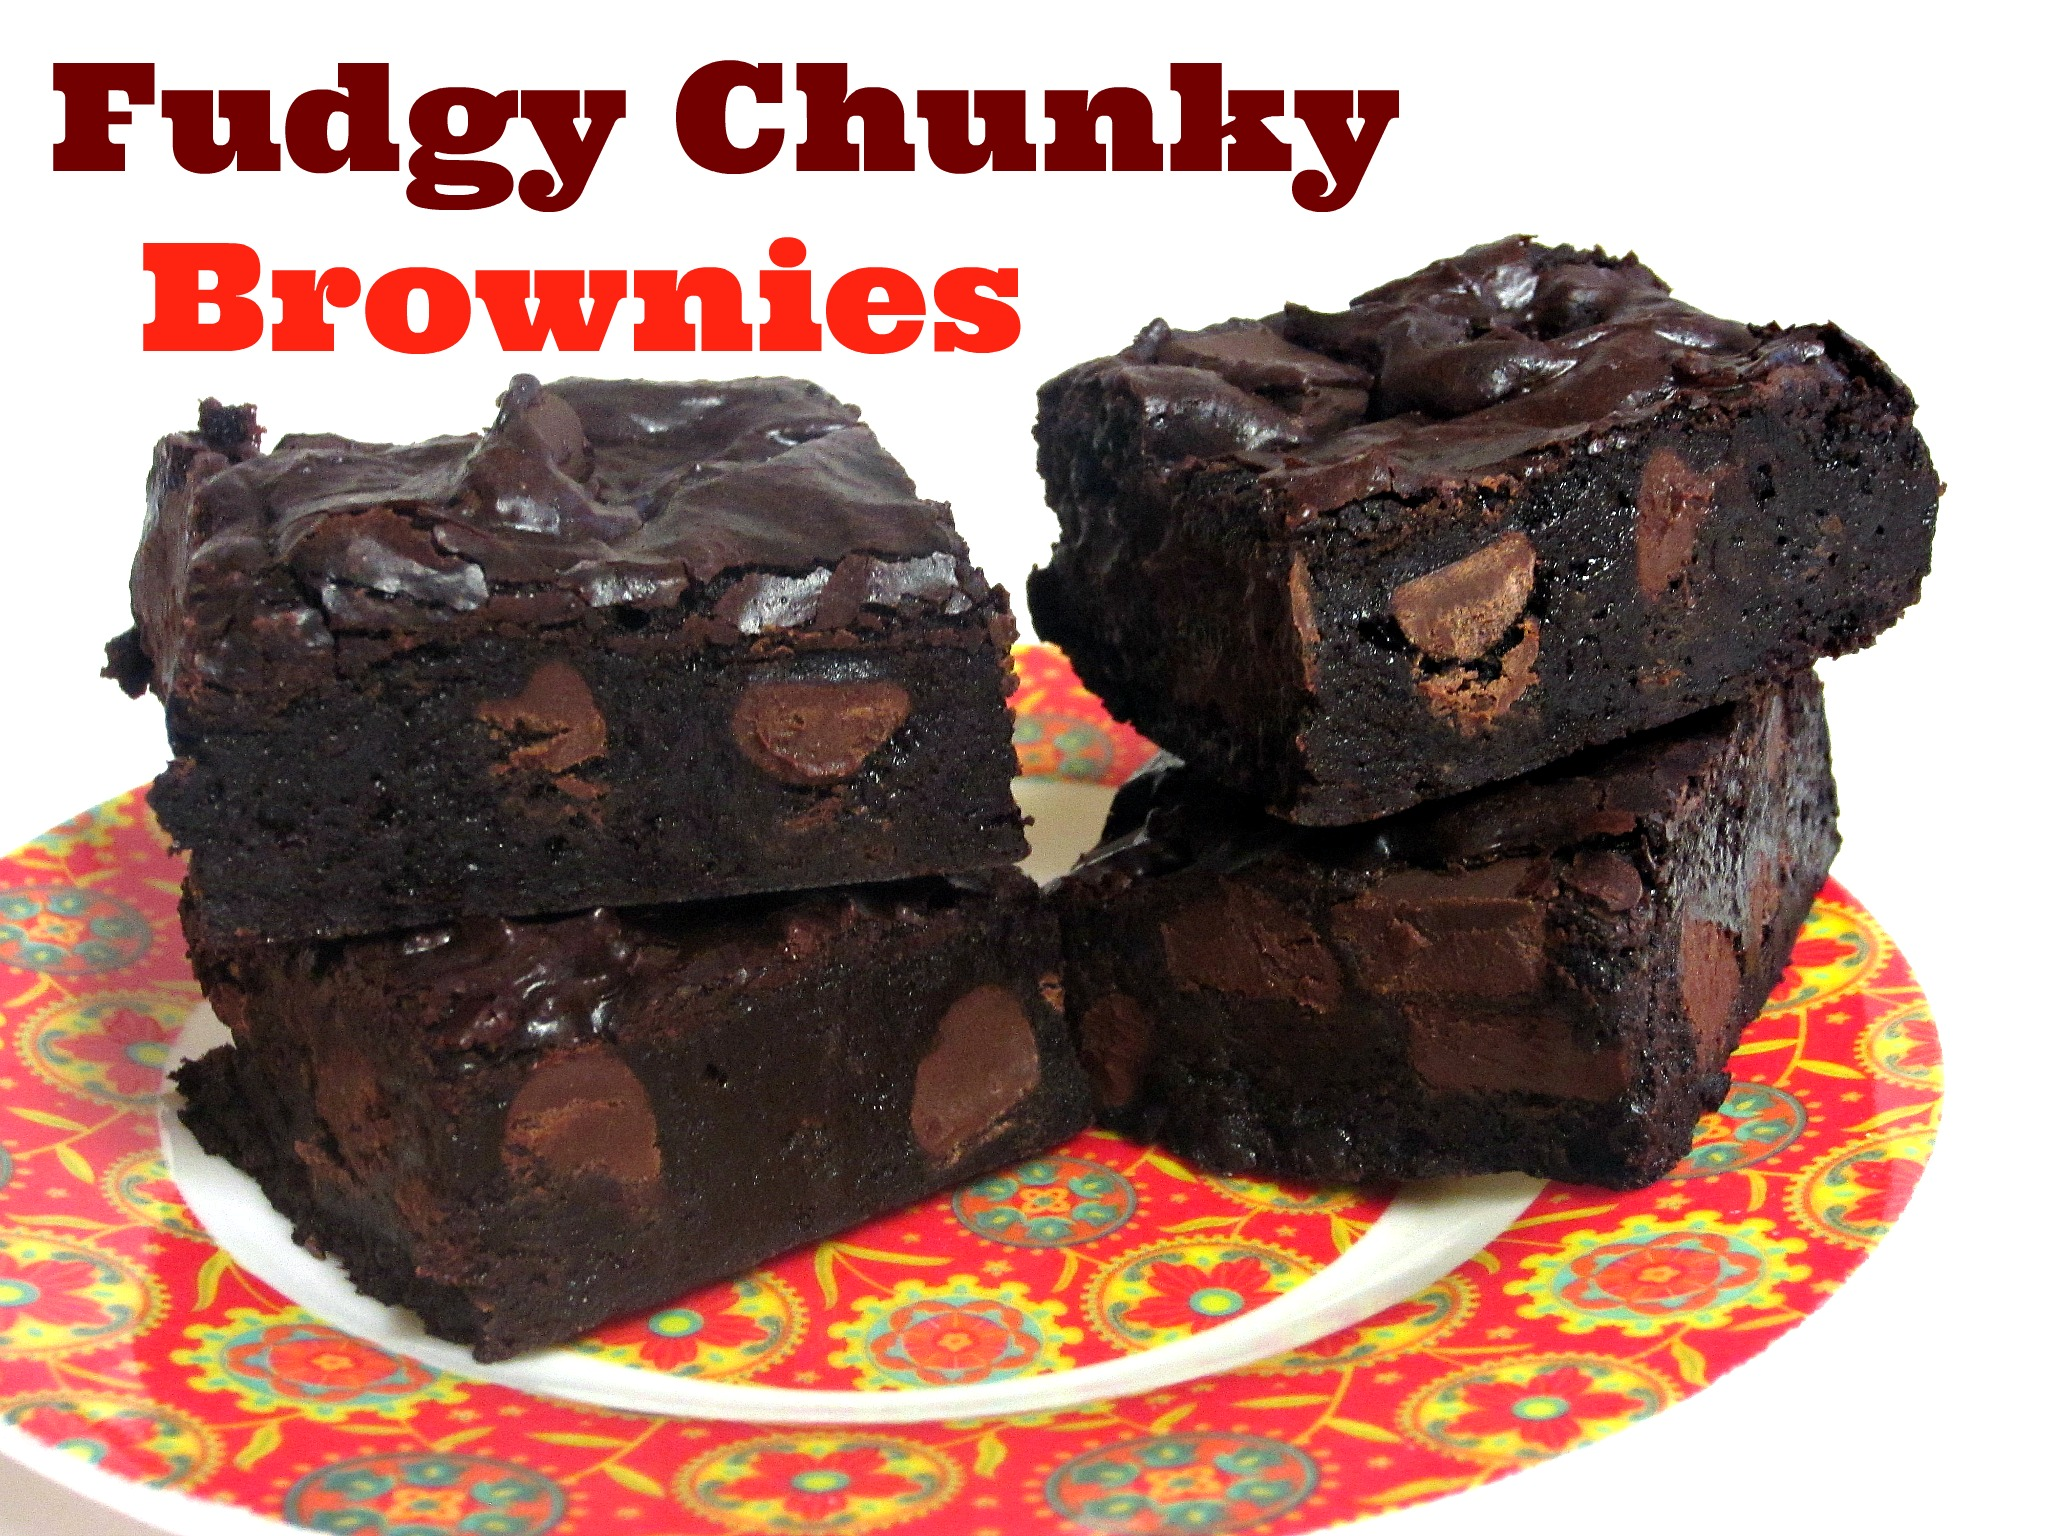 ... brownies lately and these are some of my all time favorite brownies i